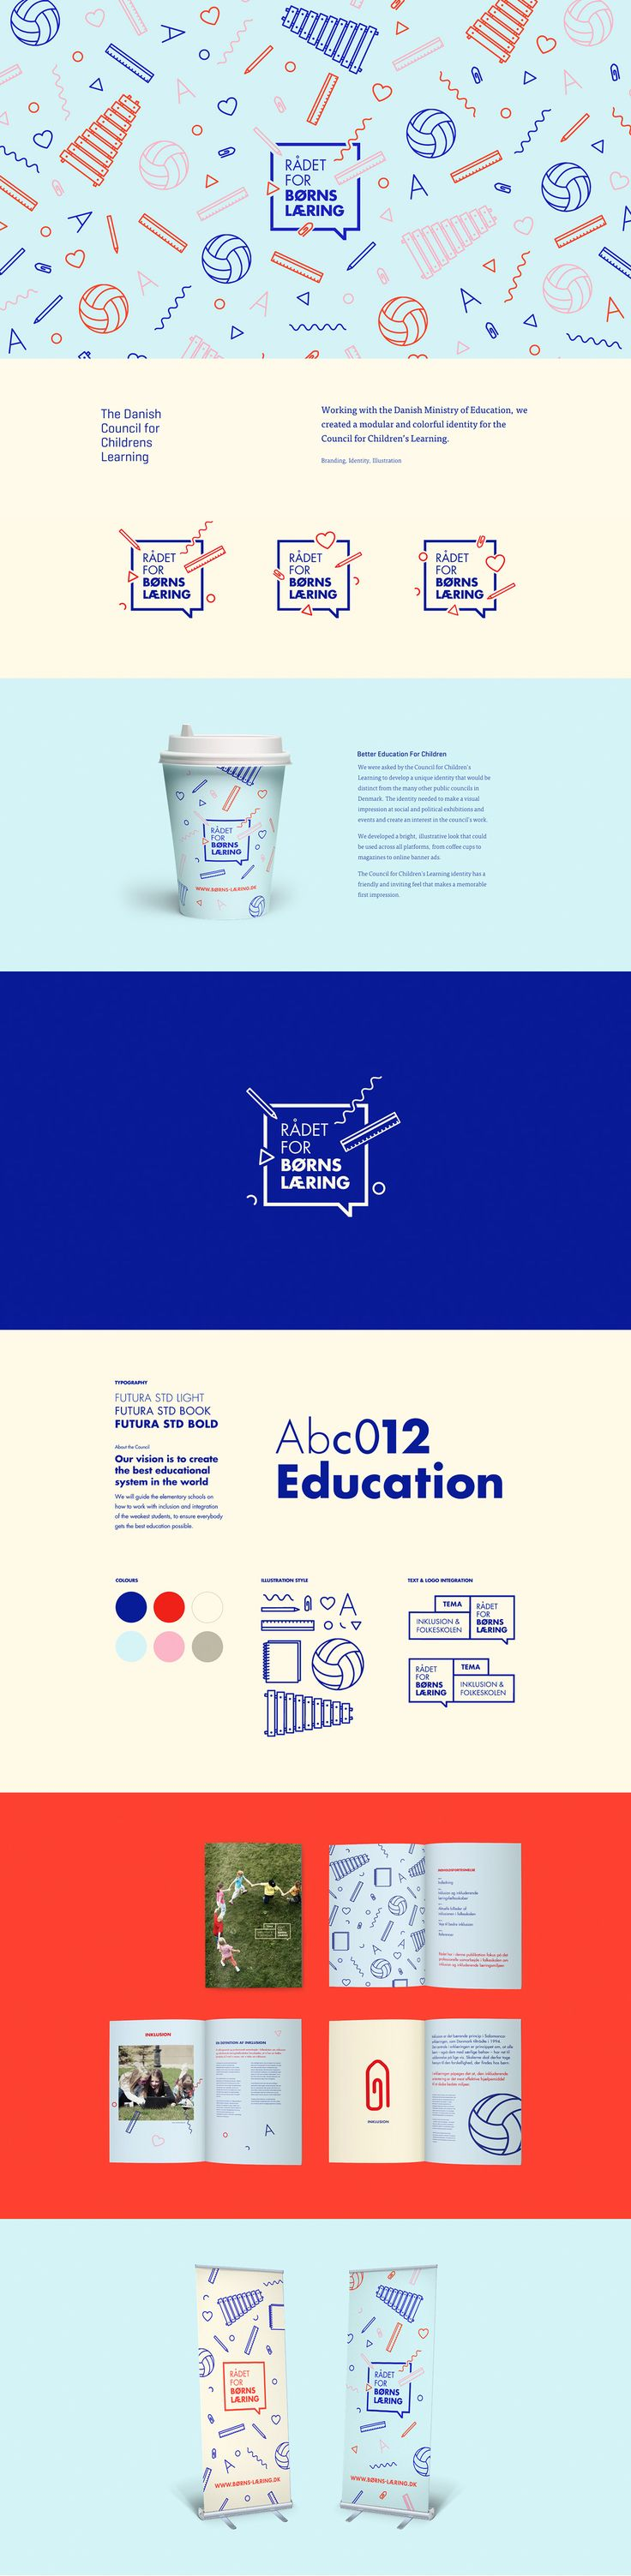 The Danish Council for Childrens Learning on Branding Served